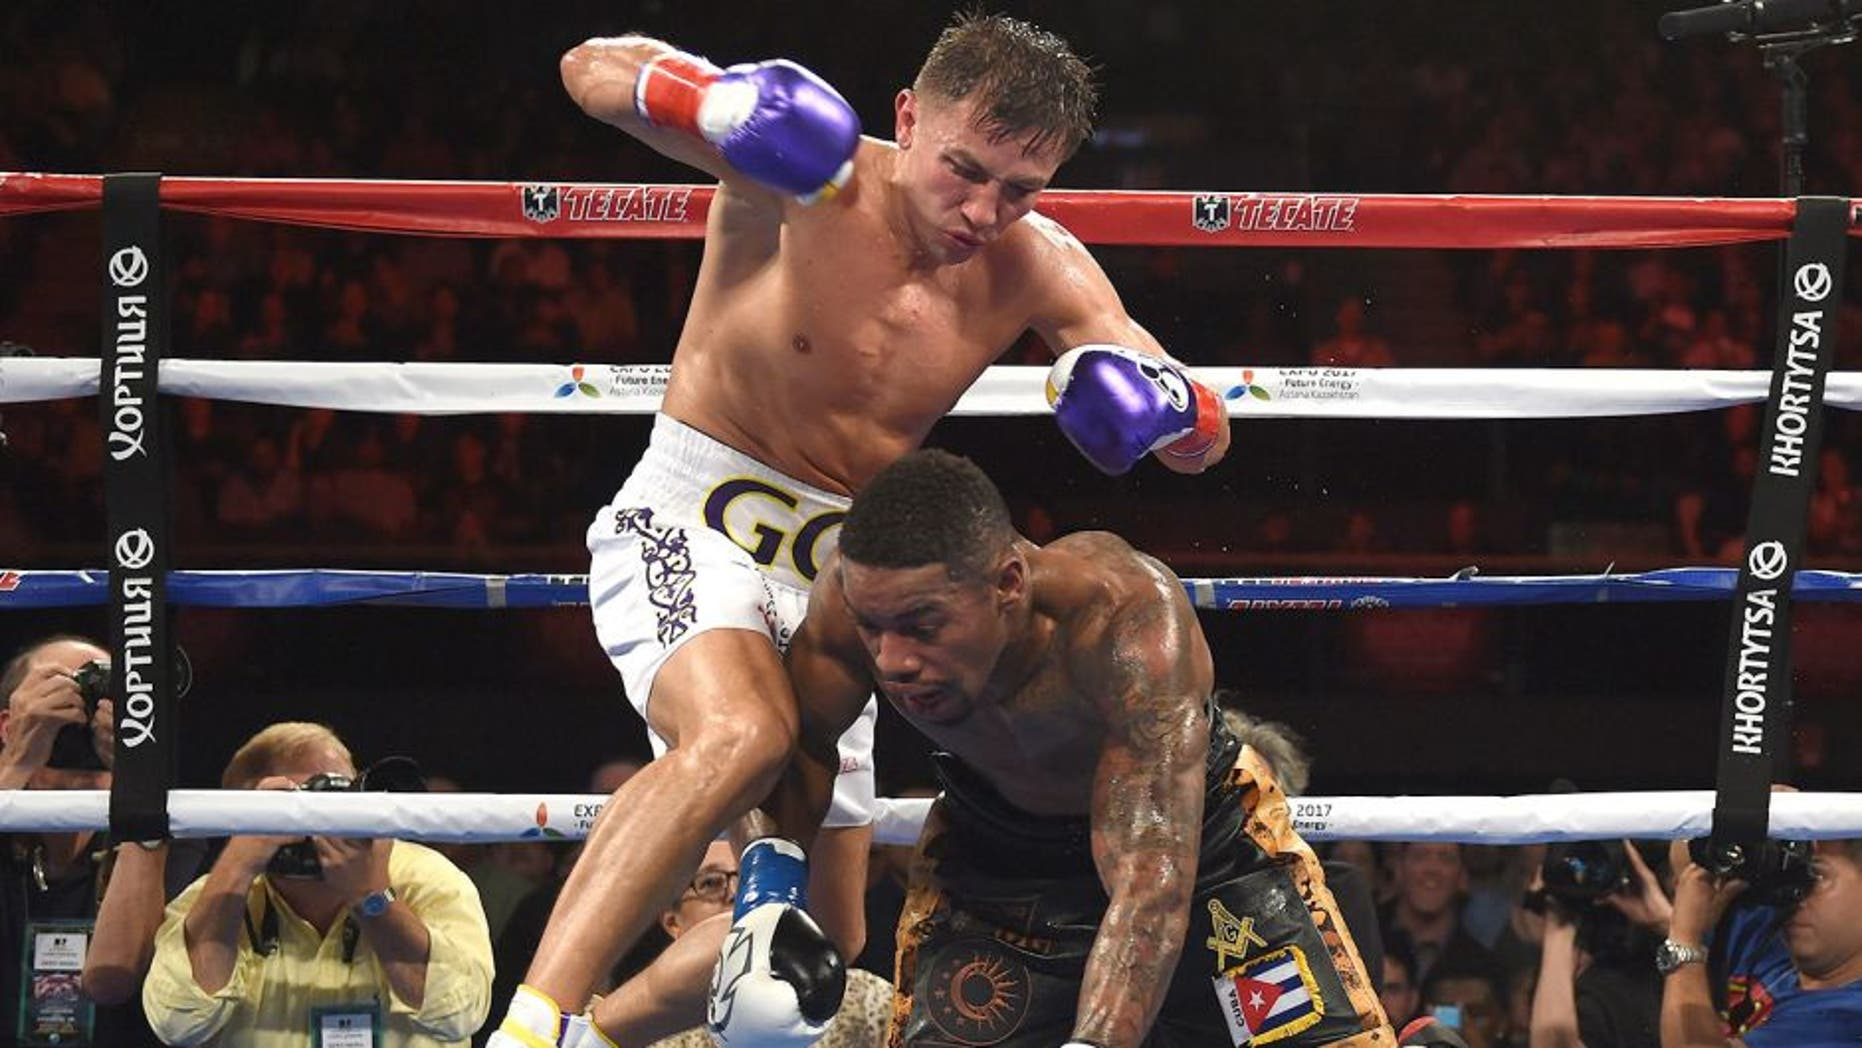 Boxer Gennady Golovkin from Kazakhstan knocks out Willie Monroe of the US in the sixth round during their Middleweight World Championship bout at the Forum Arena in Los Angeles, California on May 16, 2015. AFP PHOTO / MARK RALSTON (Photo credit should read MARK RALSTON/AFP/Getty Images)